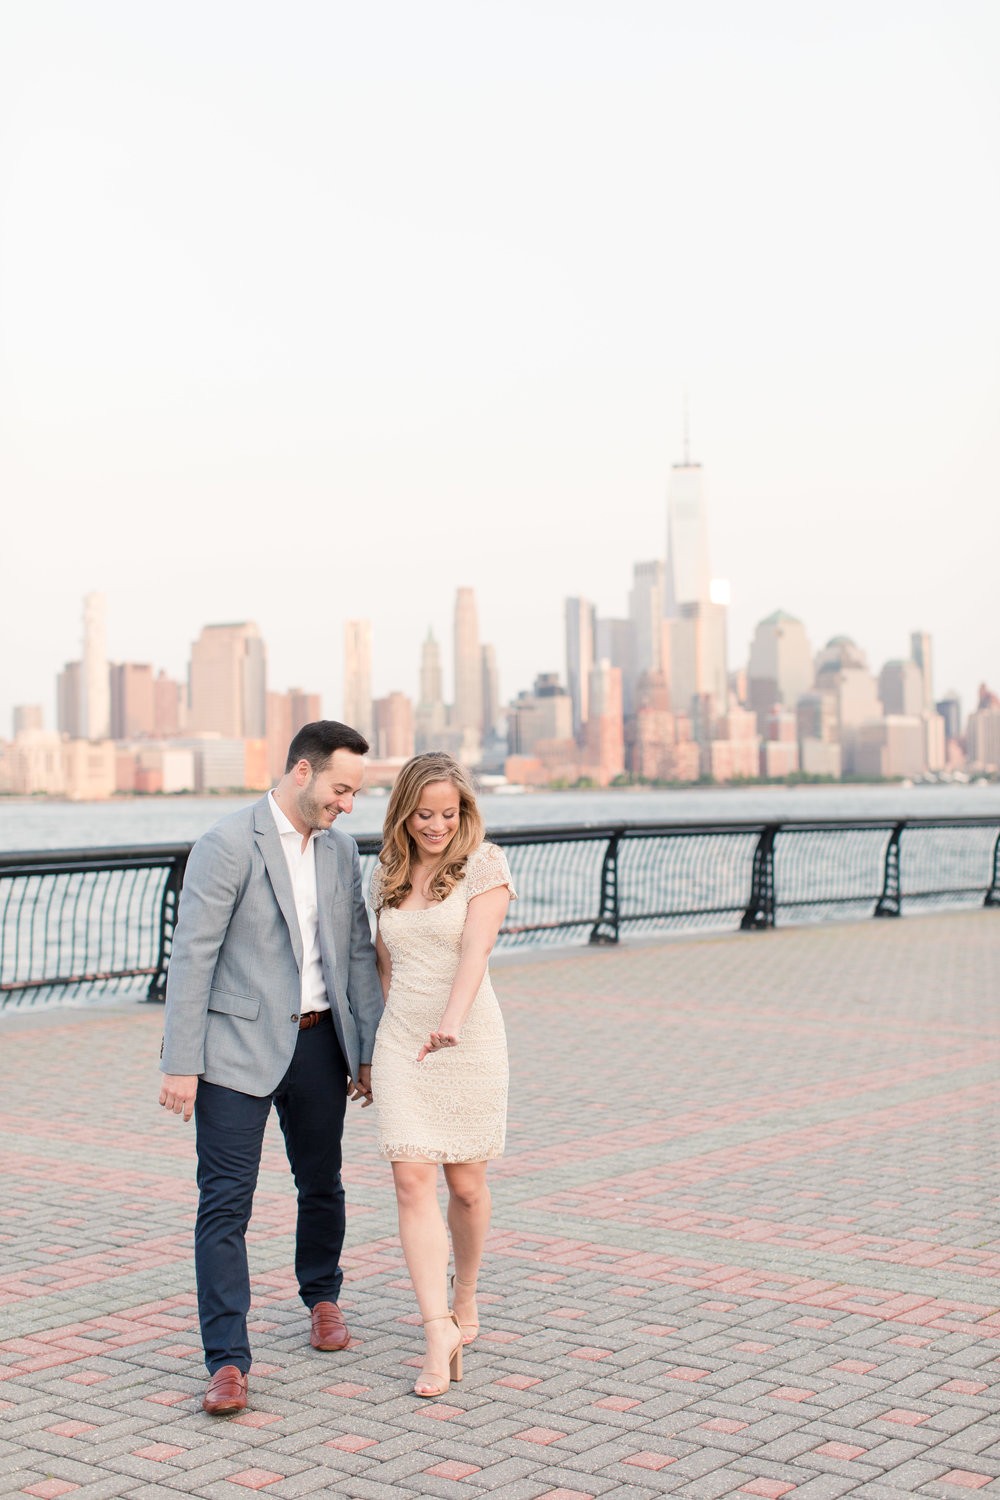 Ultimate Engagement Giveaway - Alyssa & Al - 06